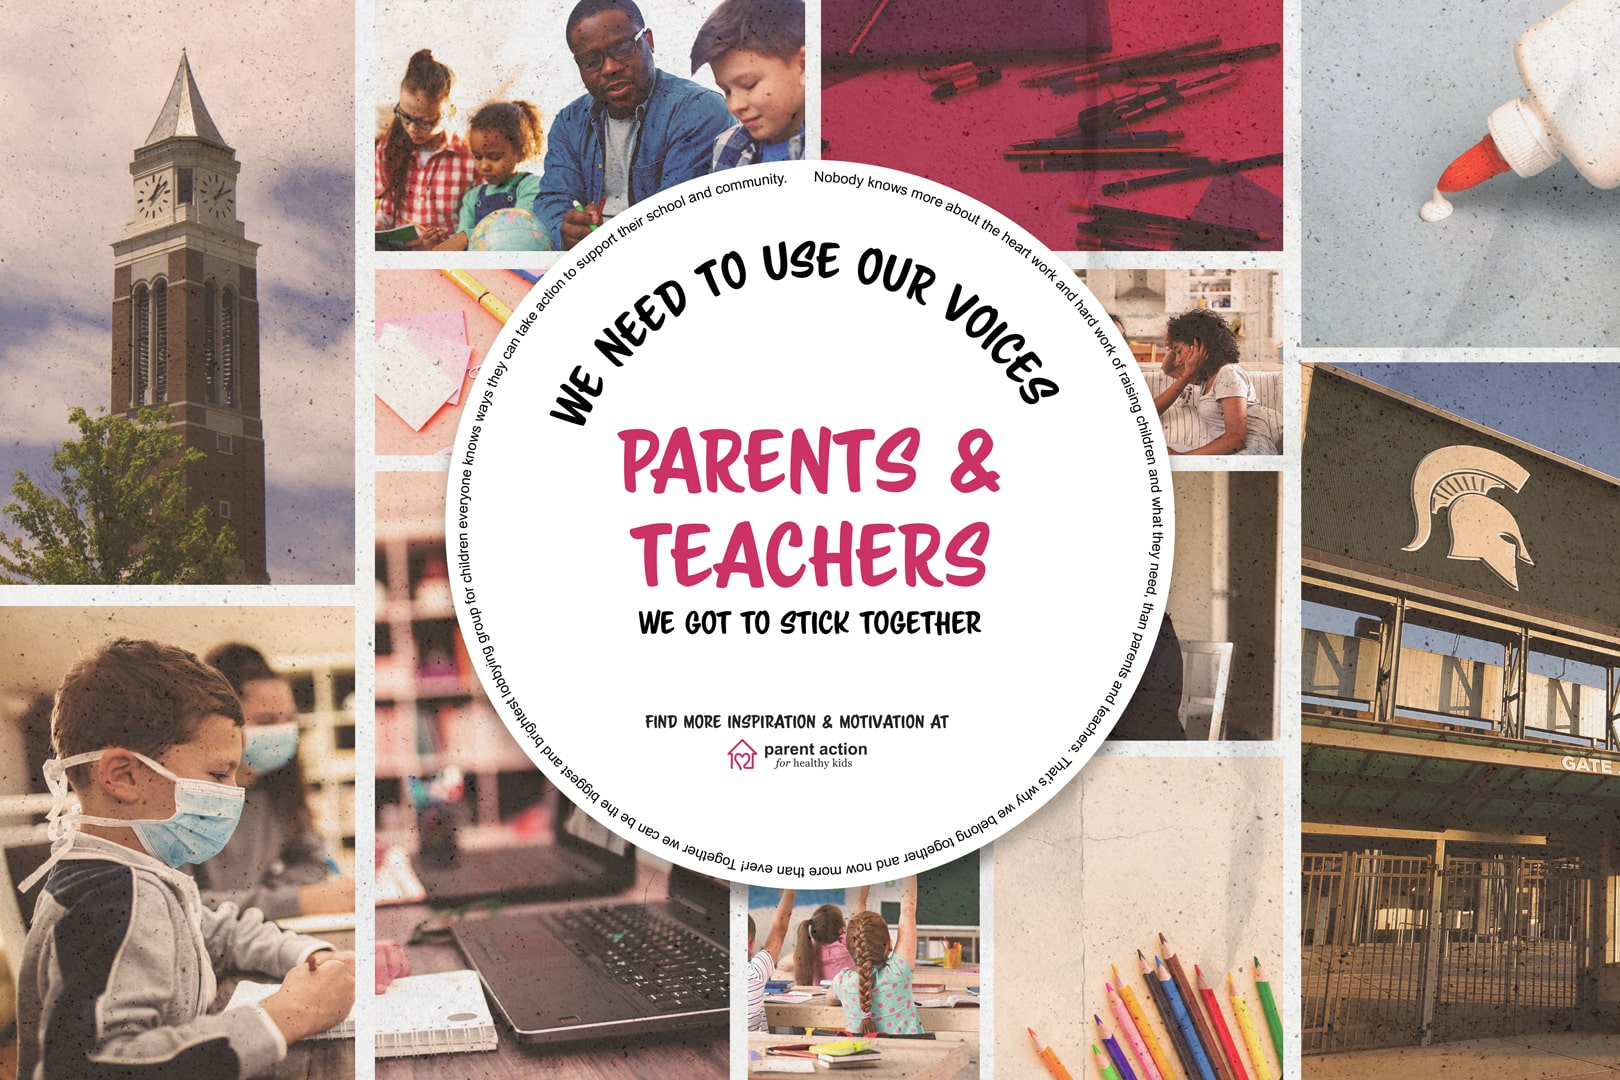 Parents and Teachers we have got to stick together